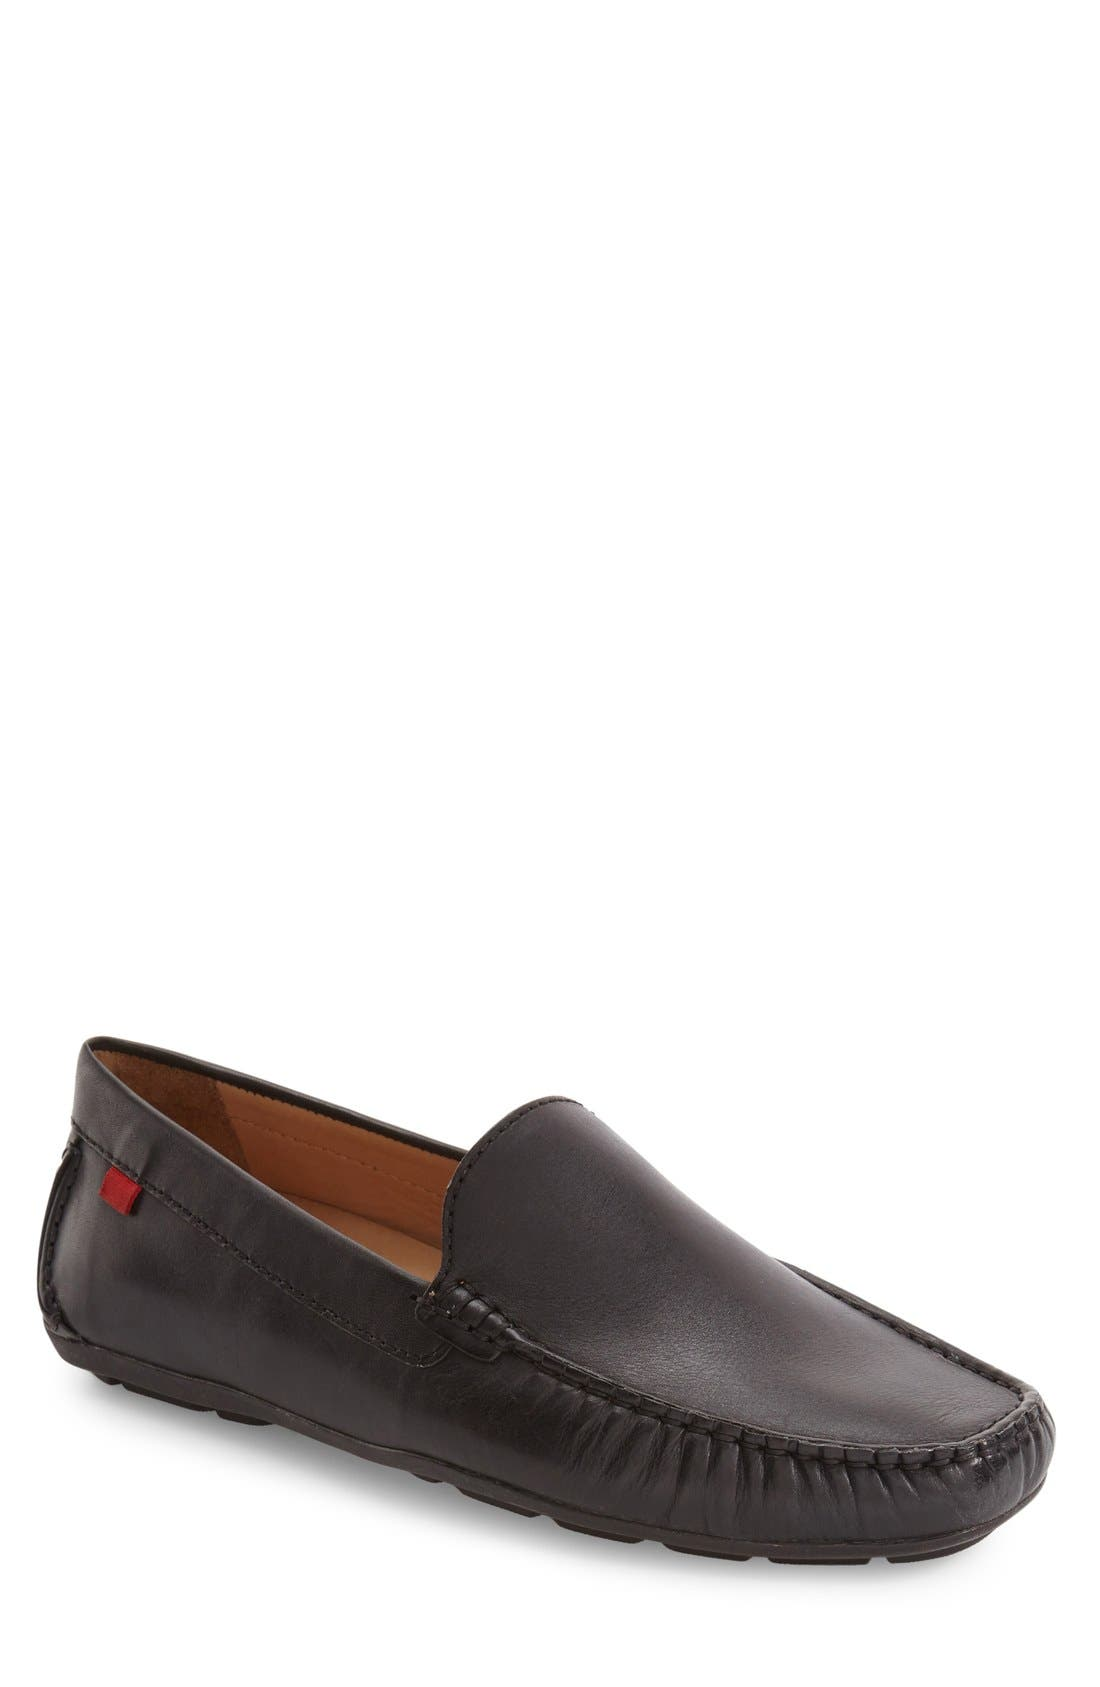 MARC JOSEPH NEW YORK, Venetian Driving Loafer, Alternate thumbnail 3, color, 001